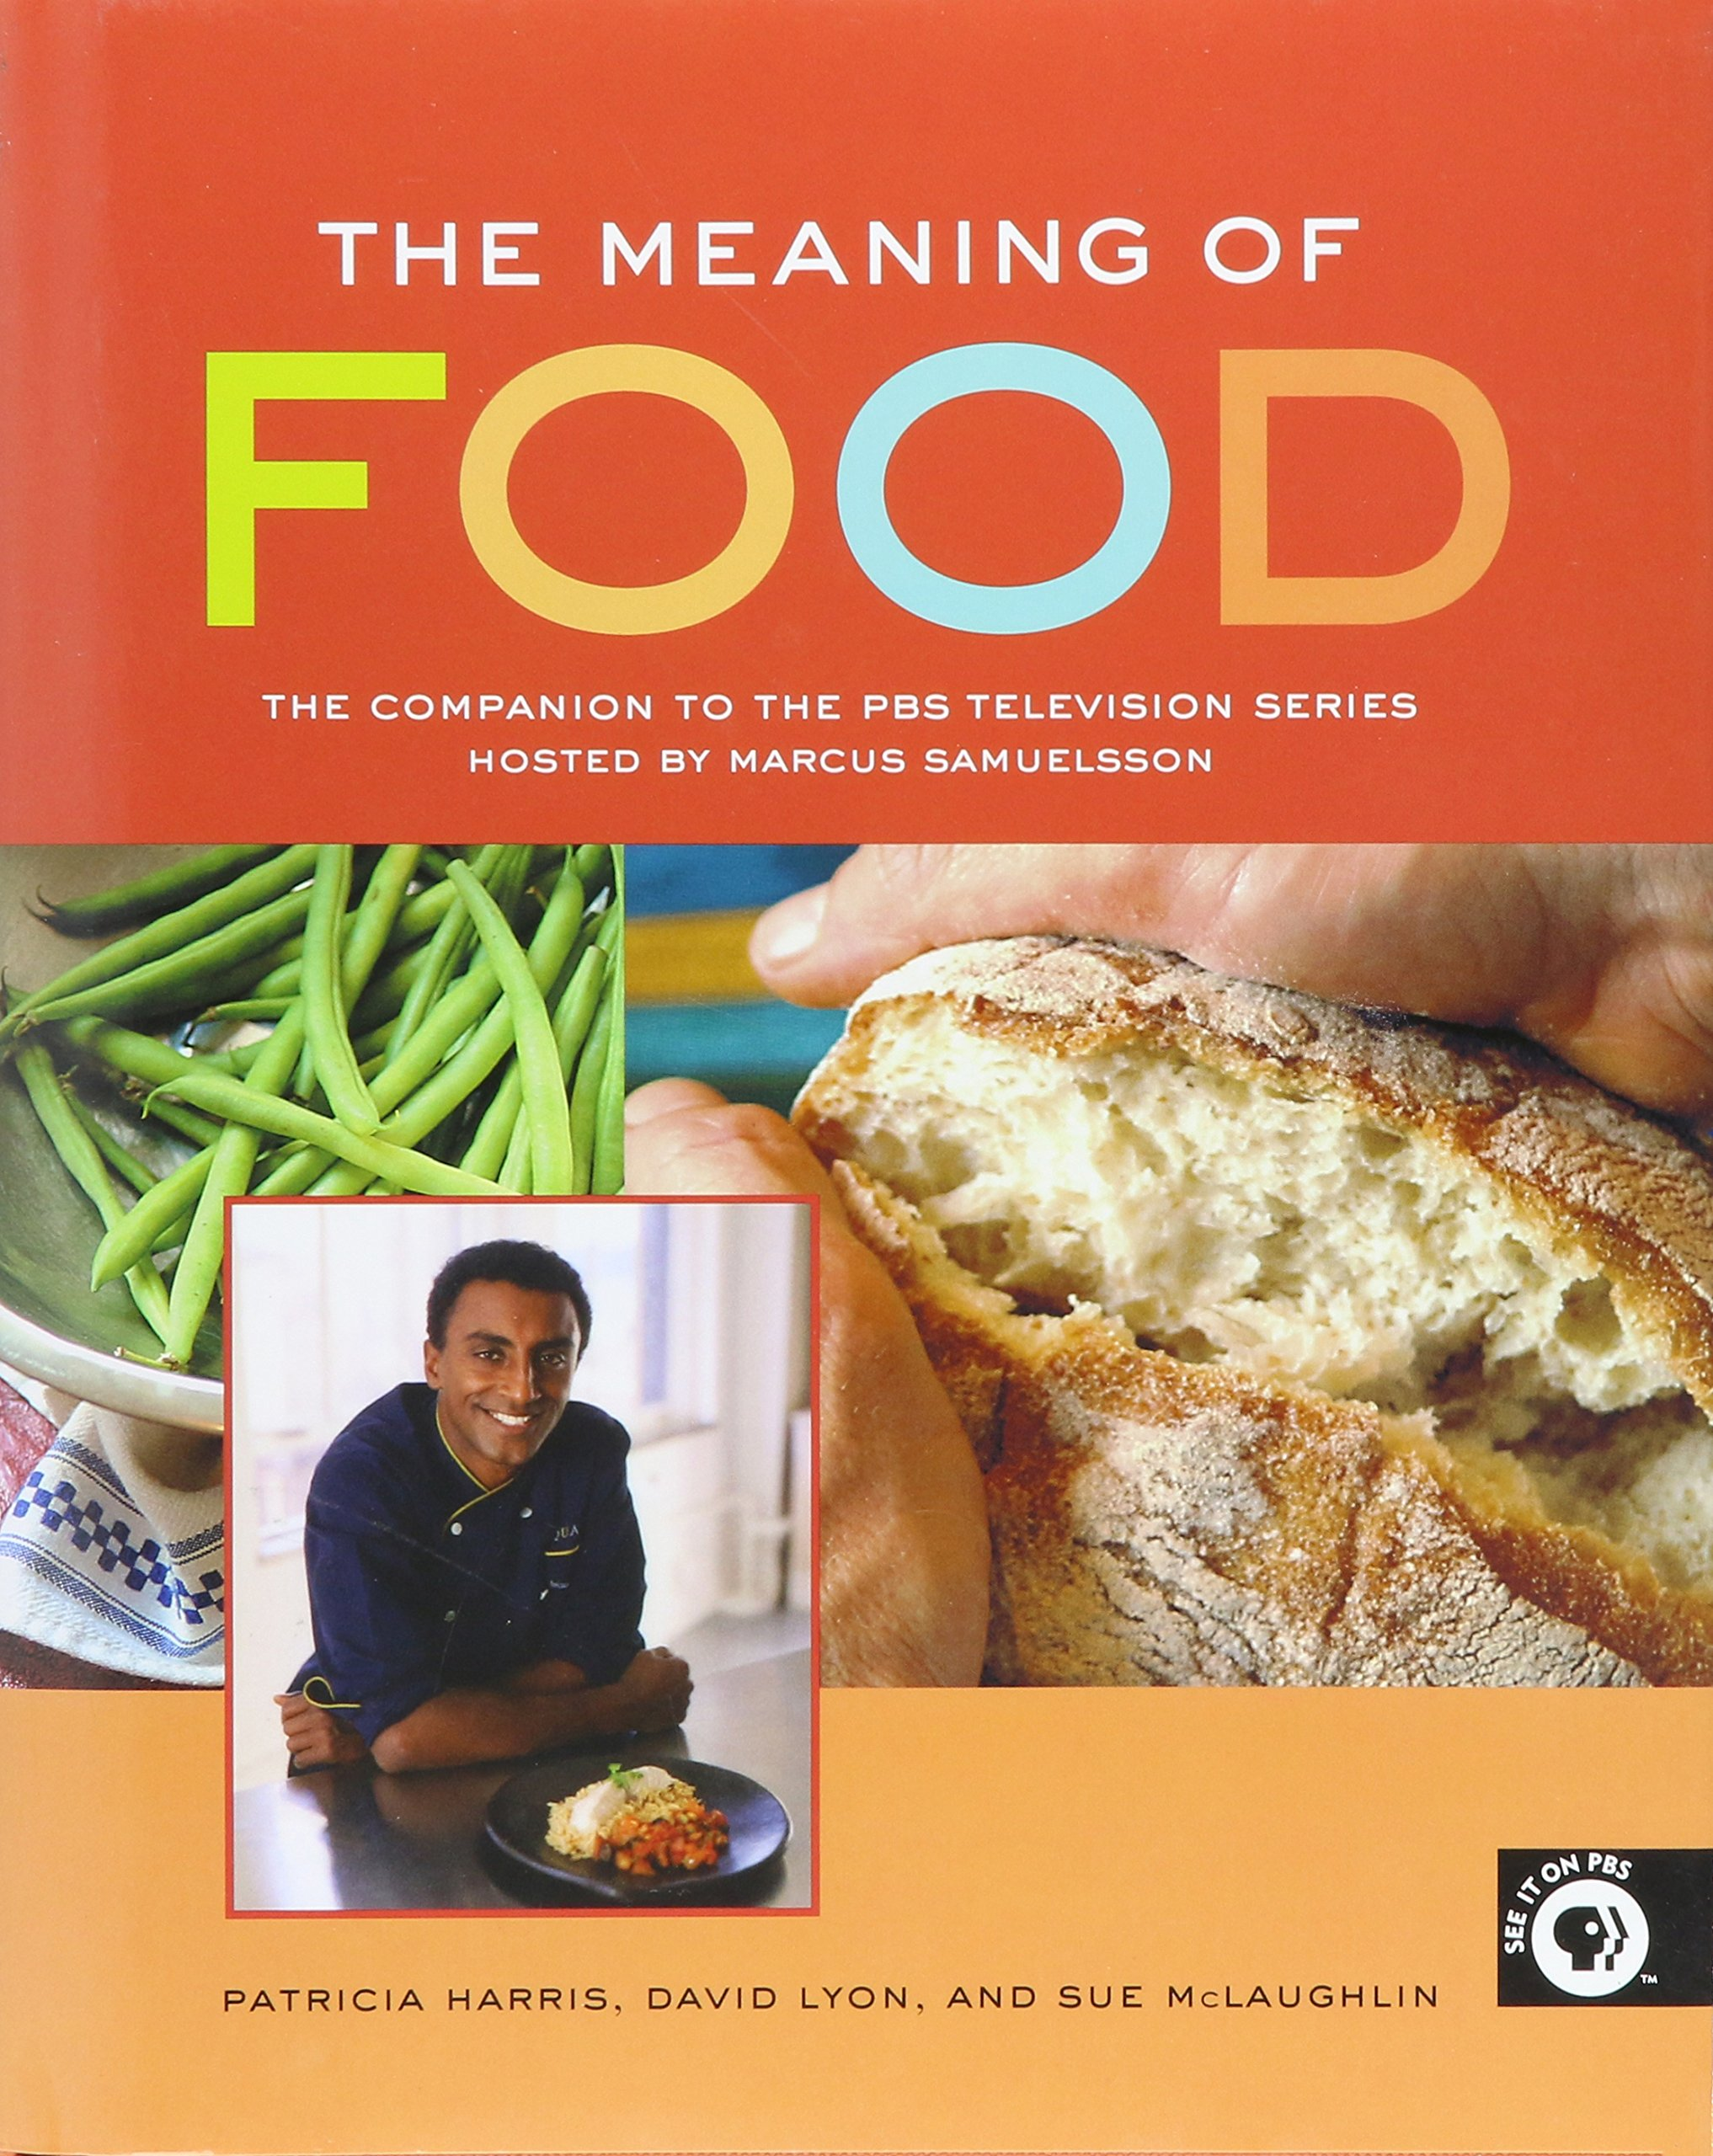 Meaning of food the companion to the pbs television series hosted meaning of food the companion to the pbs television series hosted by marcus samuelsson patricia harris 9781422357019 amazon books forumfinder Choice Image